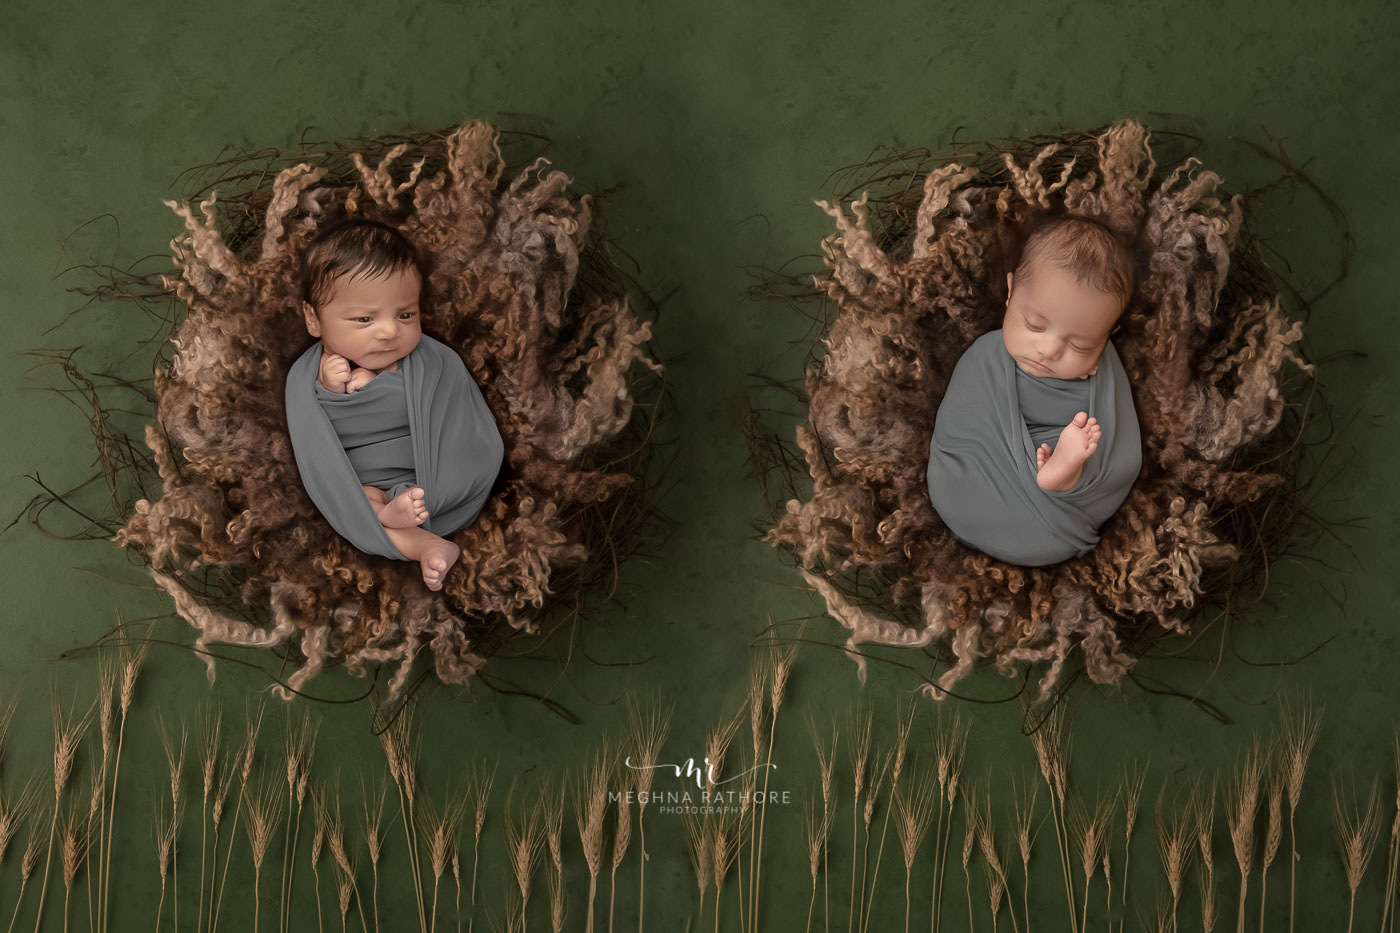 delhi gurgaon newborn baby kid maternity professional photo shoot meghna rathore photography